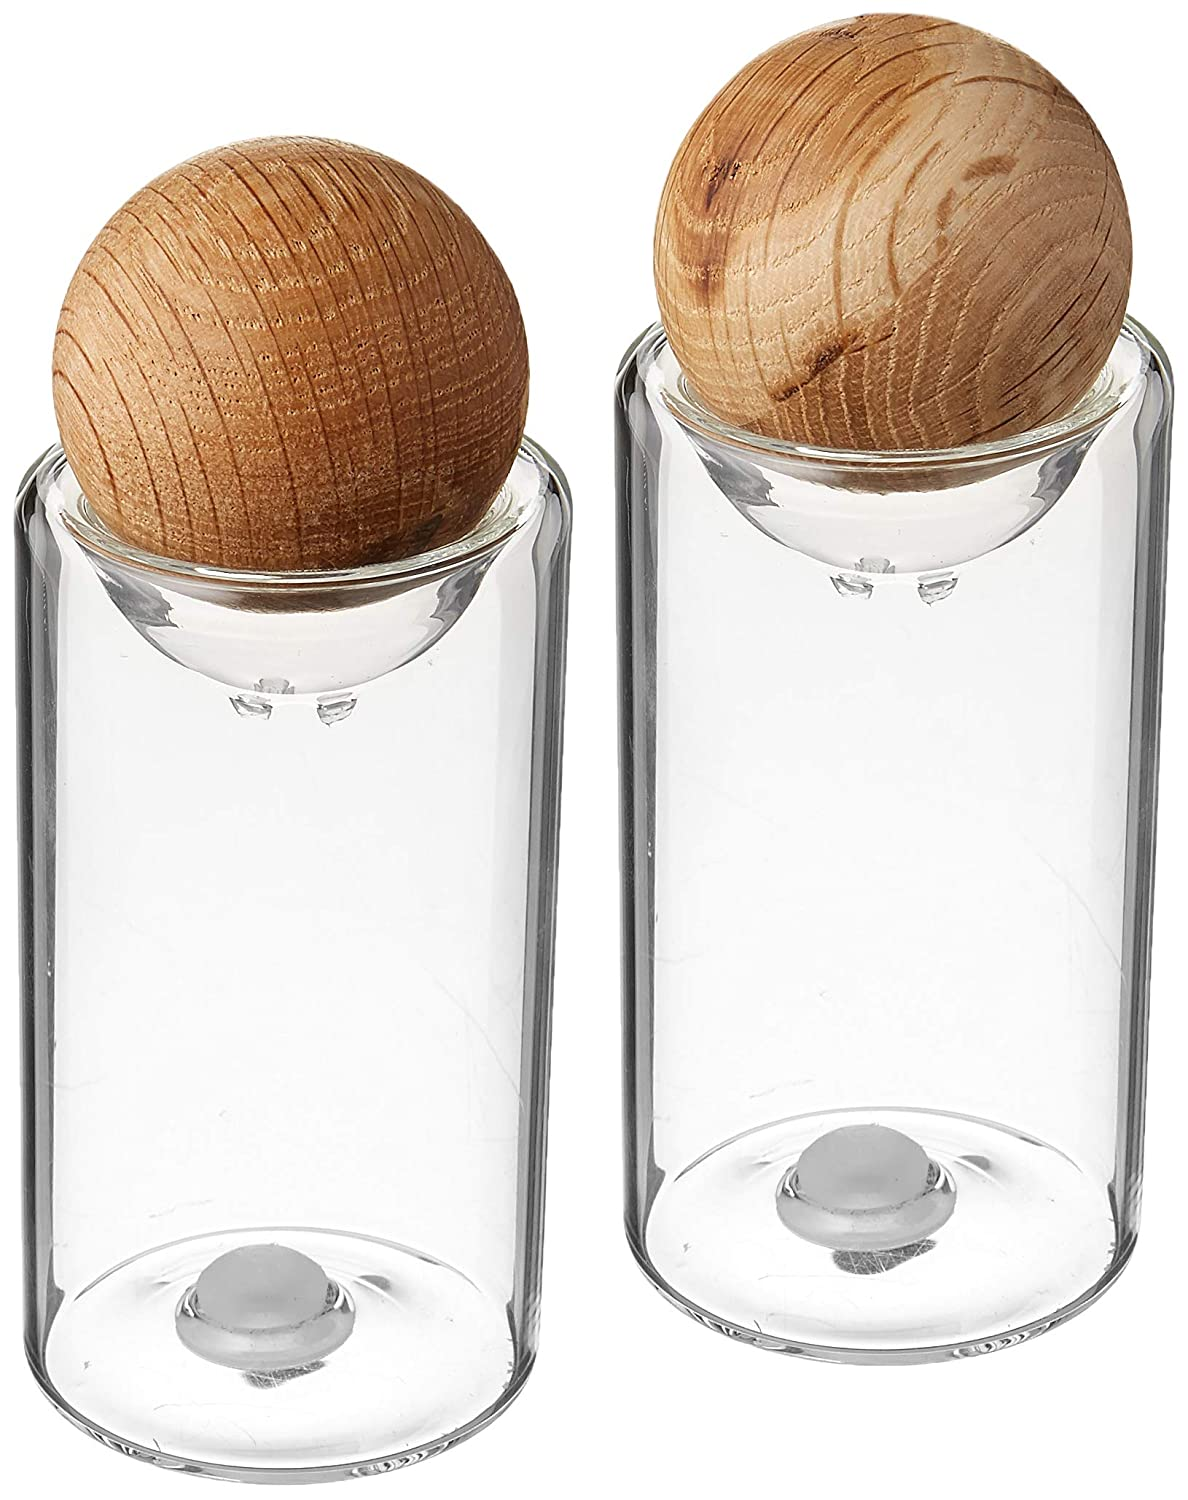 Sagaform Nature Collection Salt and Pepper Shakers Glass Oak Stopper 4 1/2-Inch, Set of 2 5017178